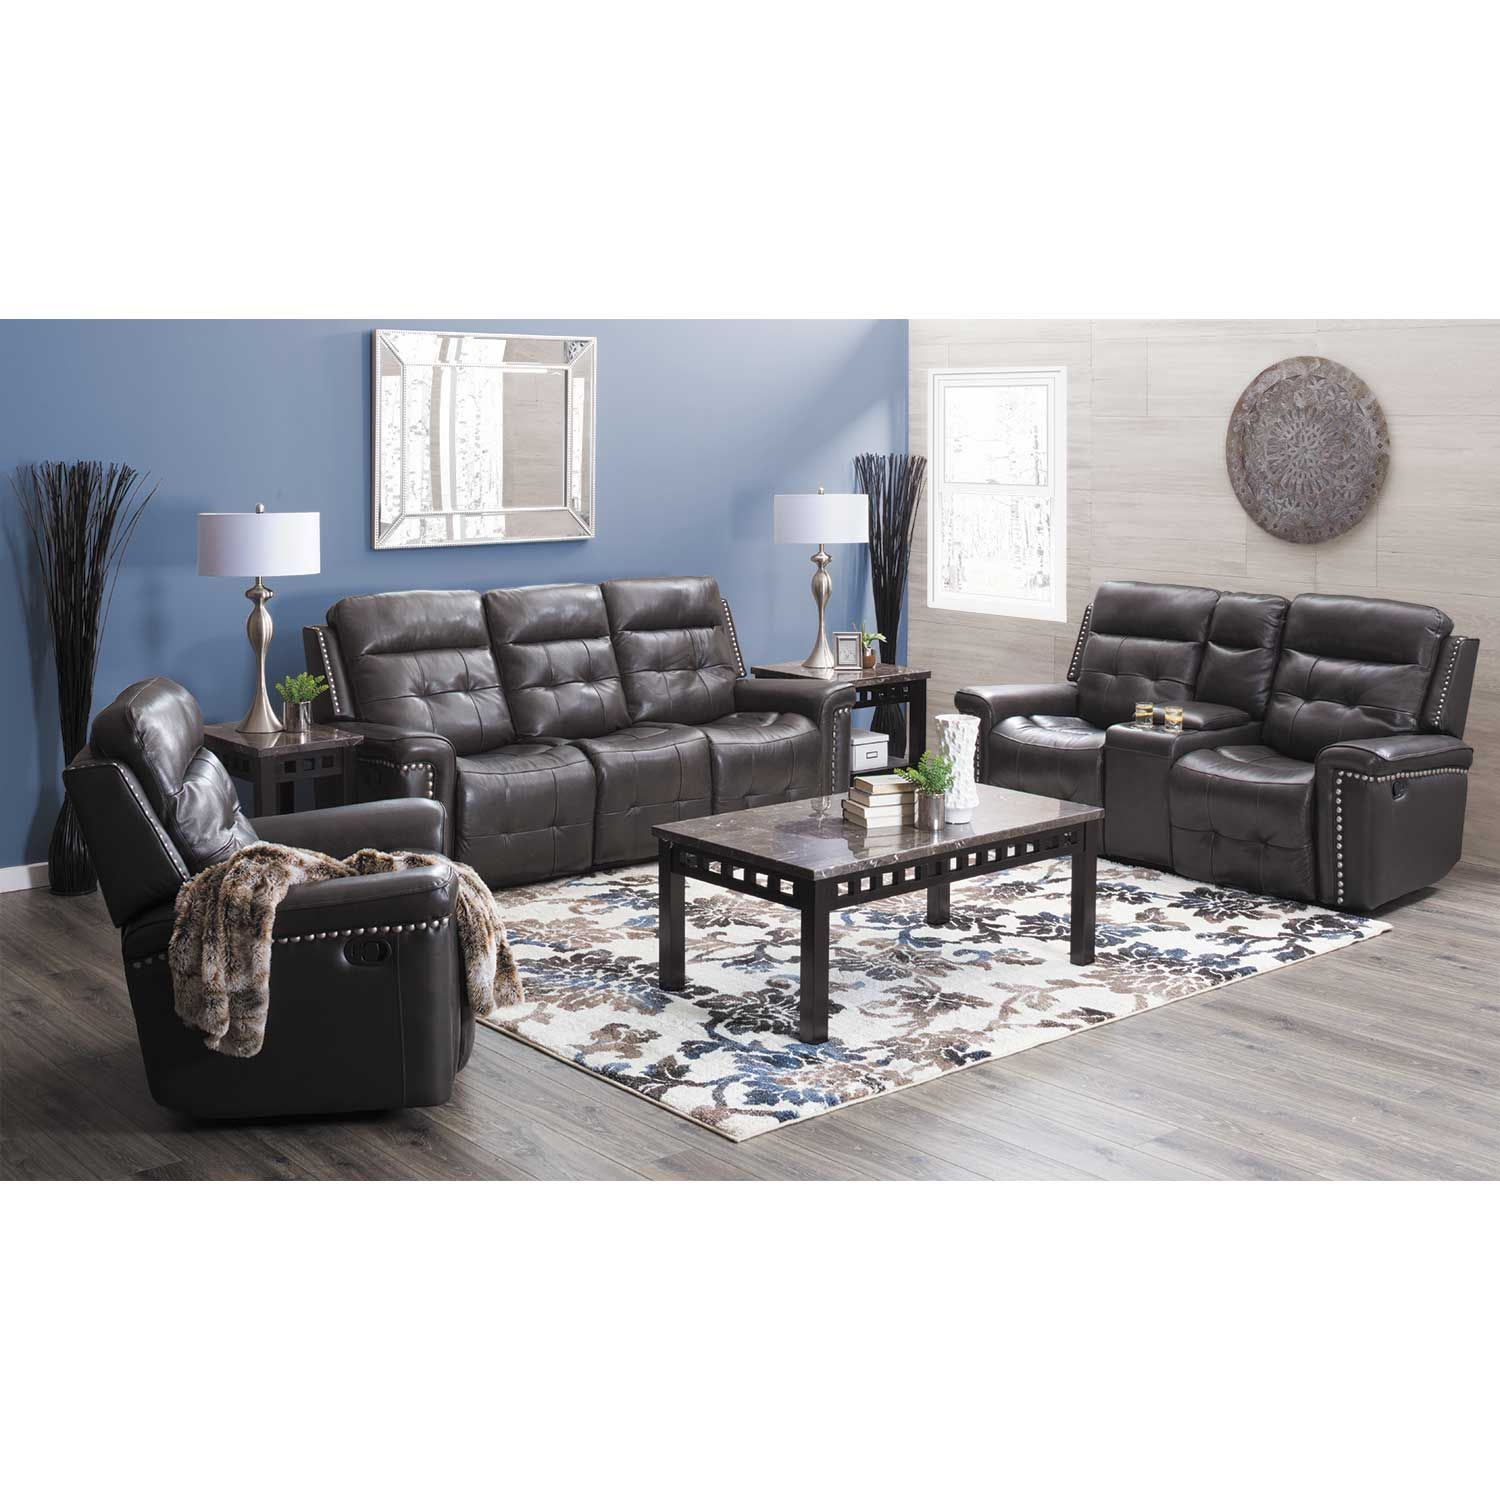 Kenzie Leather Power Reclining Sofa D7287by53 F068 V068